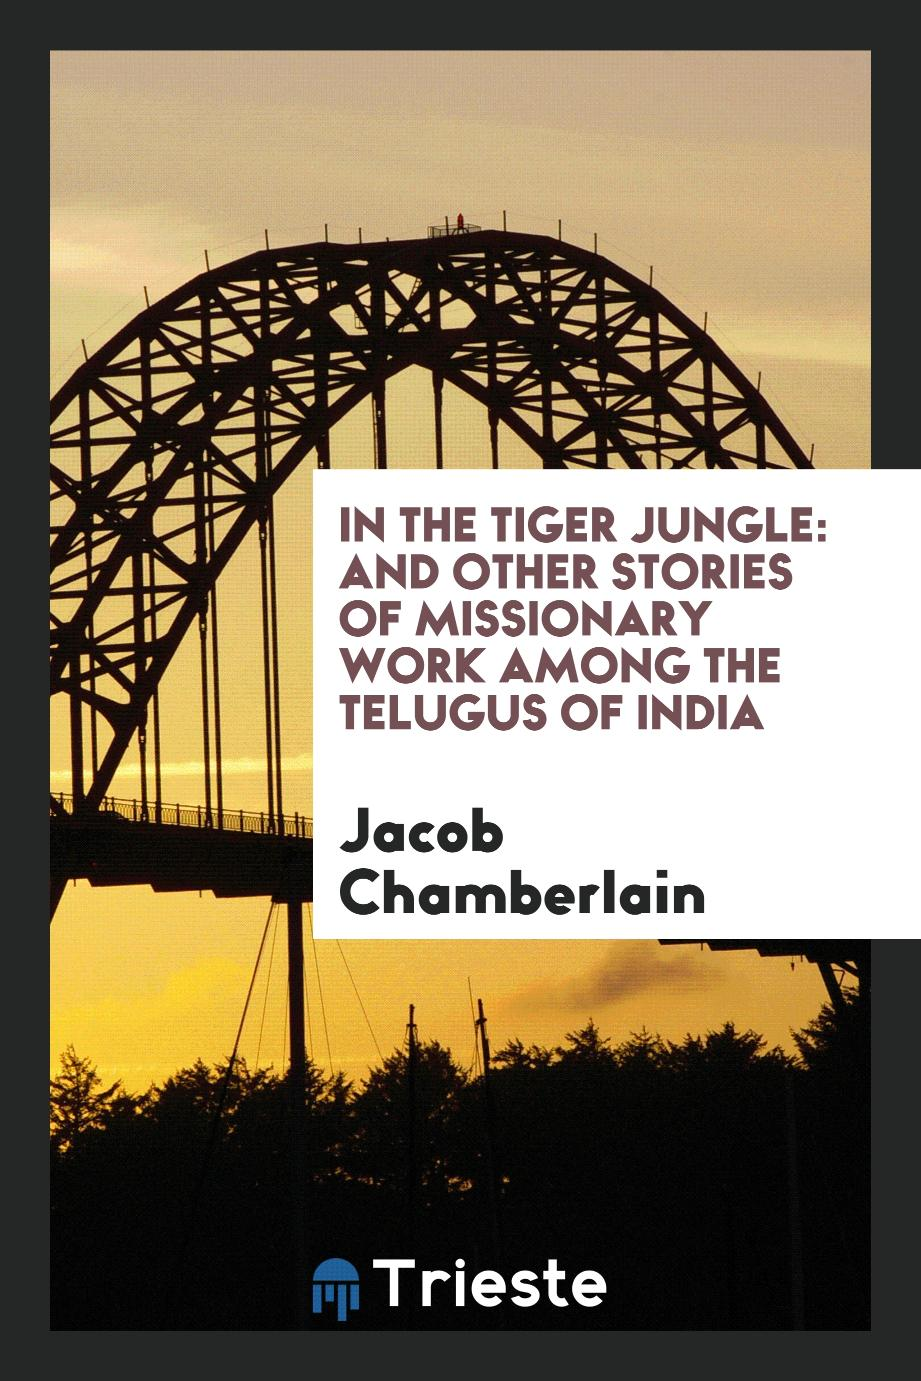 In the tiger jungle: and other stories of missionary work among the Telugus of India